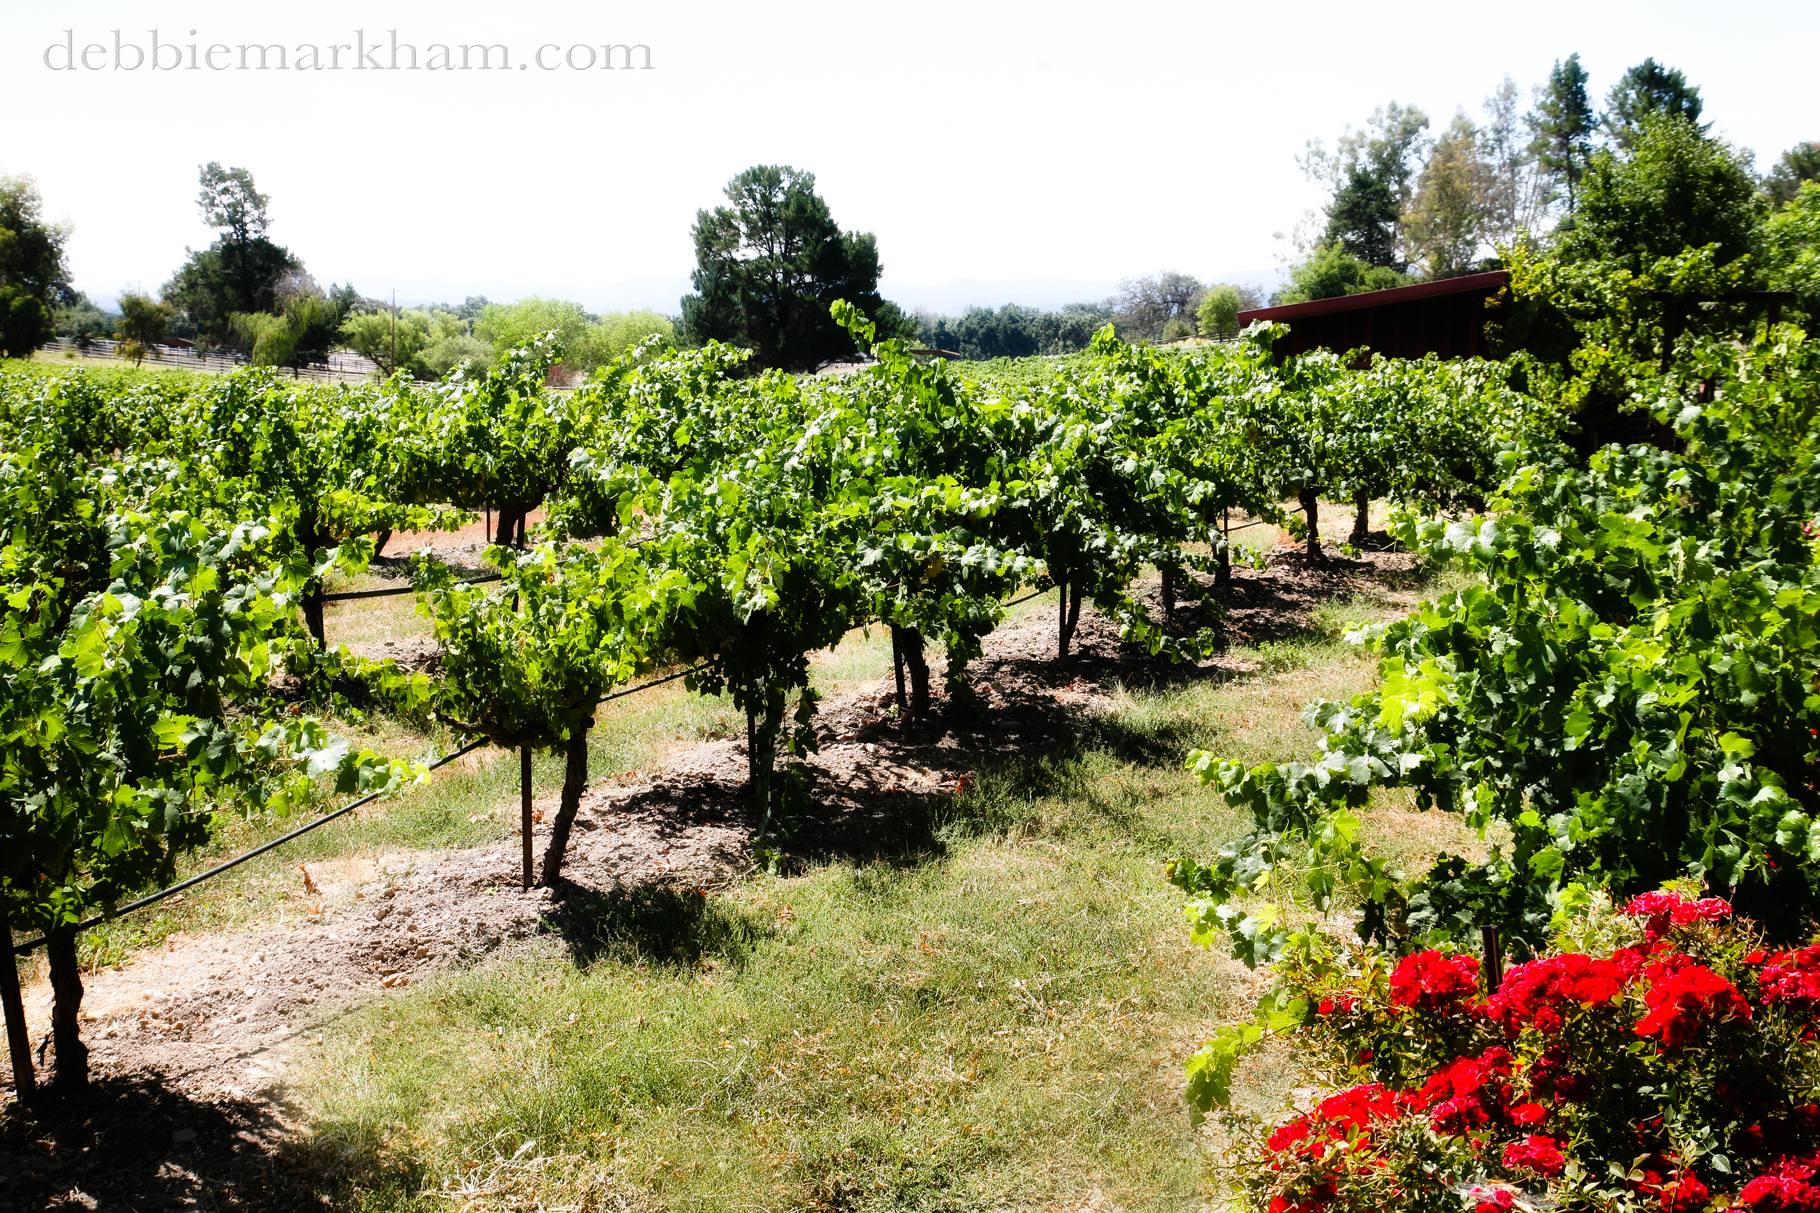 Cambria Photographer Debbie Markham-Professional Wedding Photos at Castoro Winery - Vineyards Outdoor-21